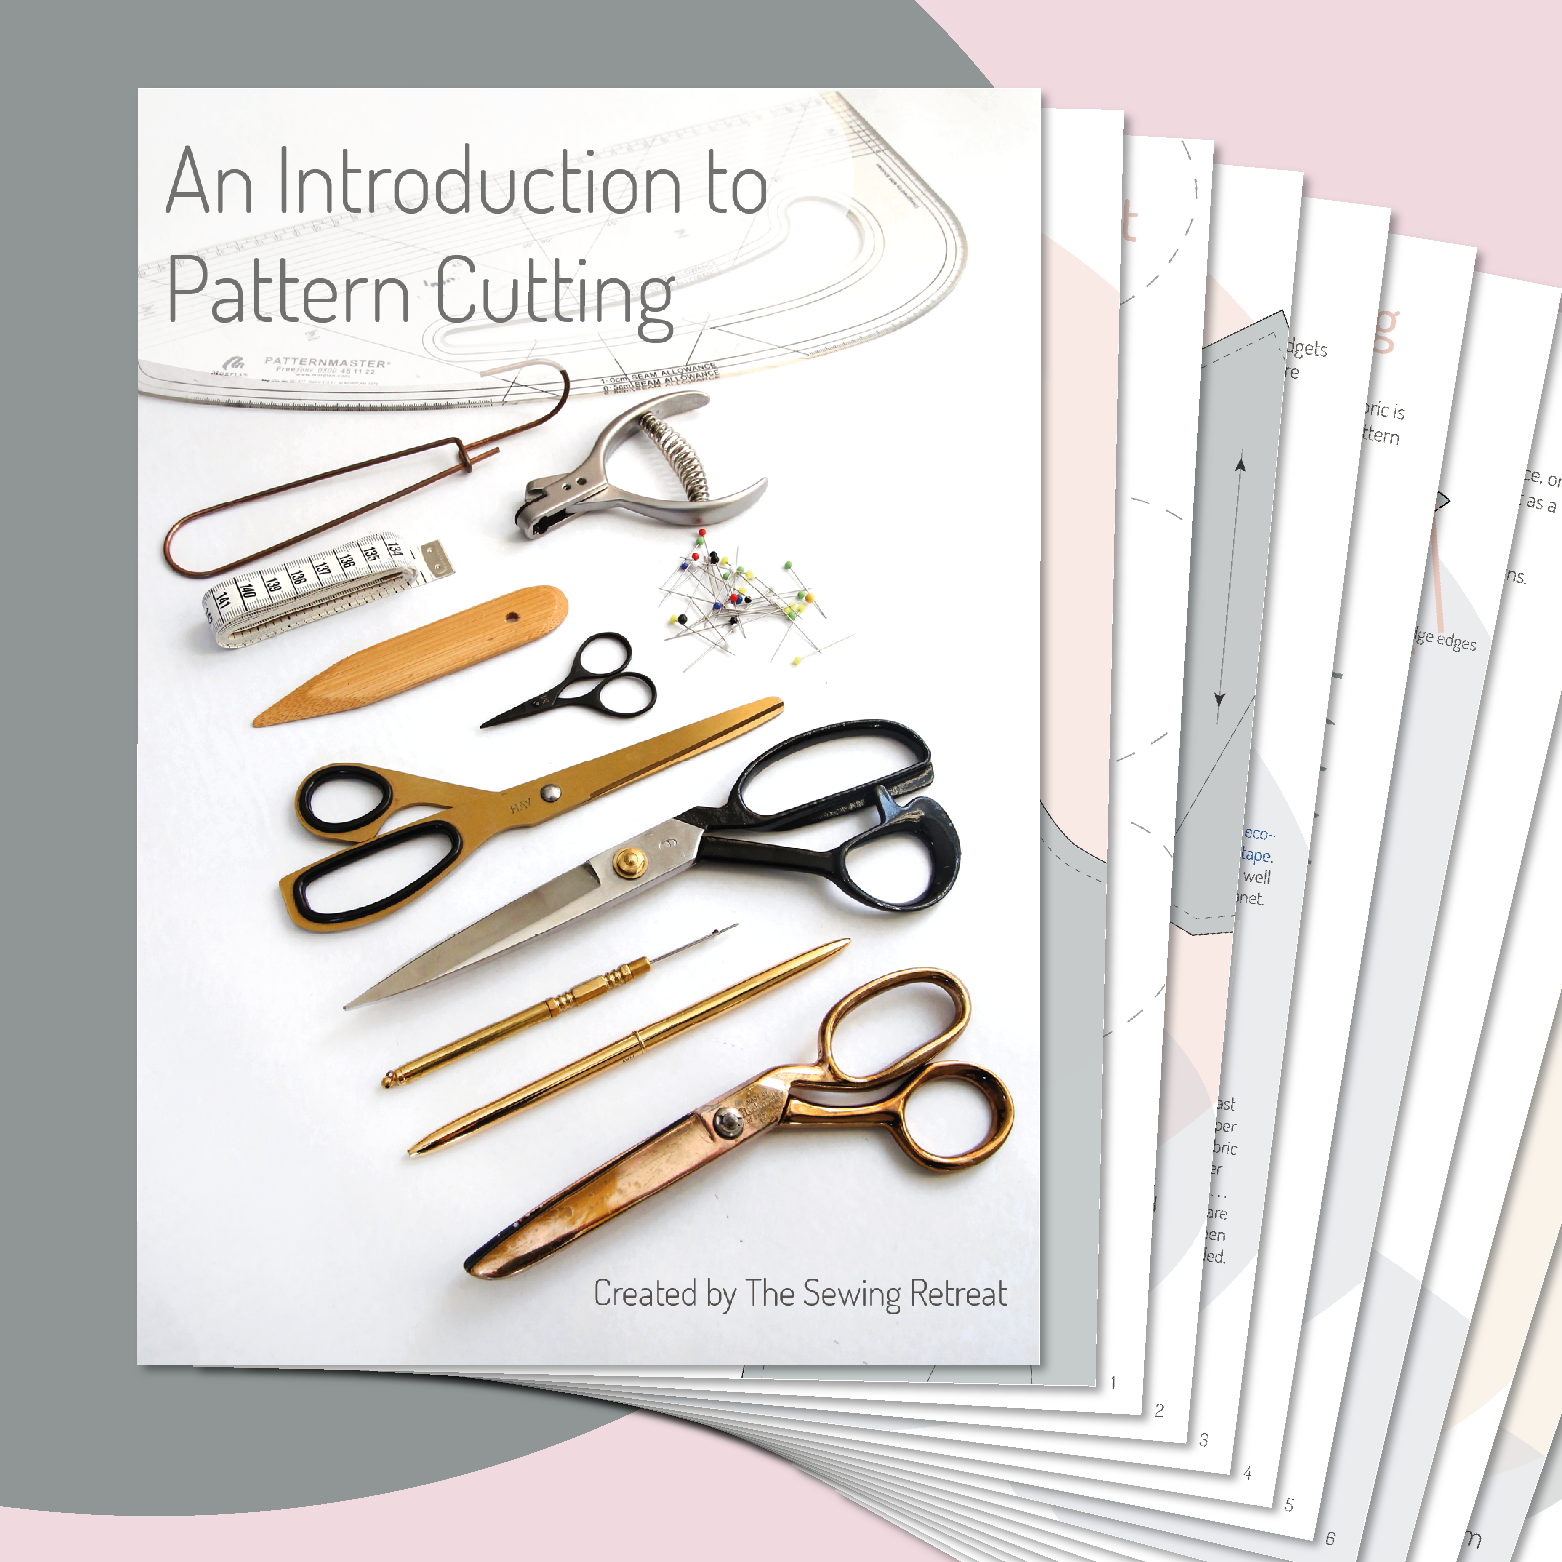 The Sewing Retreat_Intro to Pattern Cutting_Images-04 - Sarah Roz